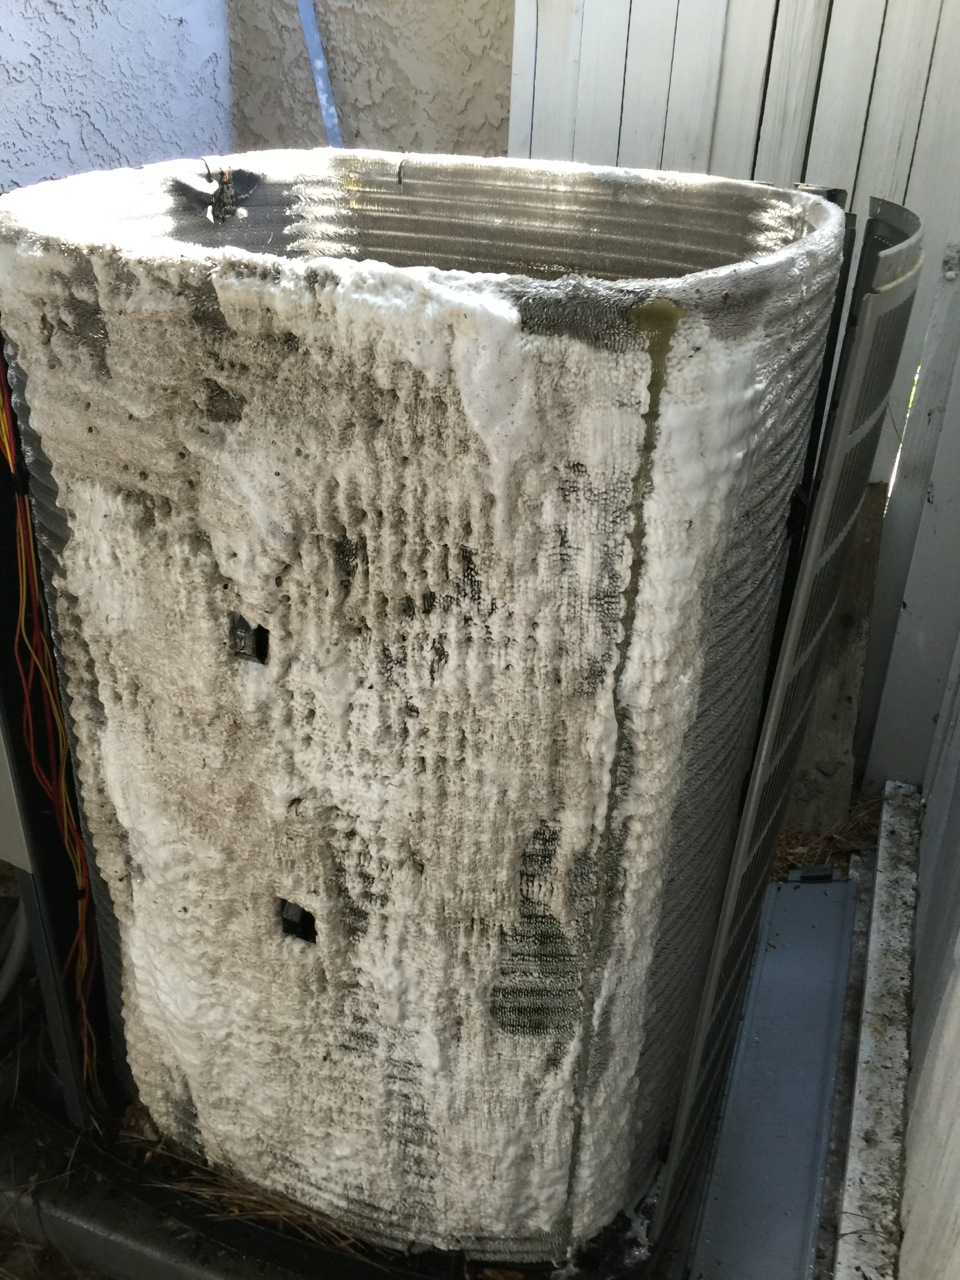 American Standard Furnace Wiring The Importance Of Air Conditioner Coil Cleaning Kilowatt